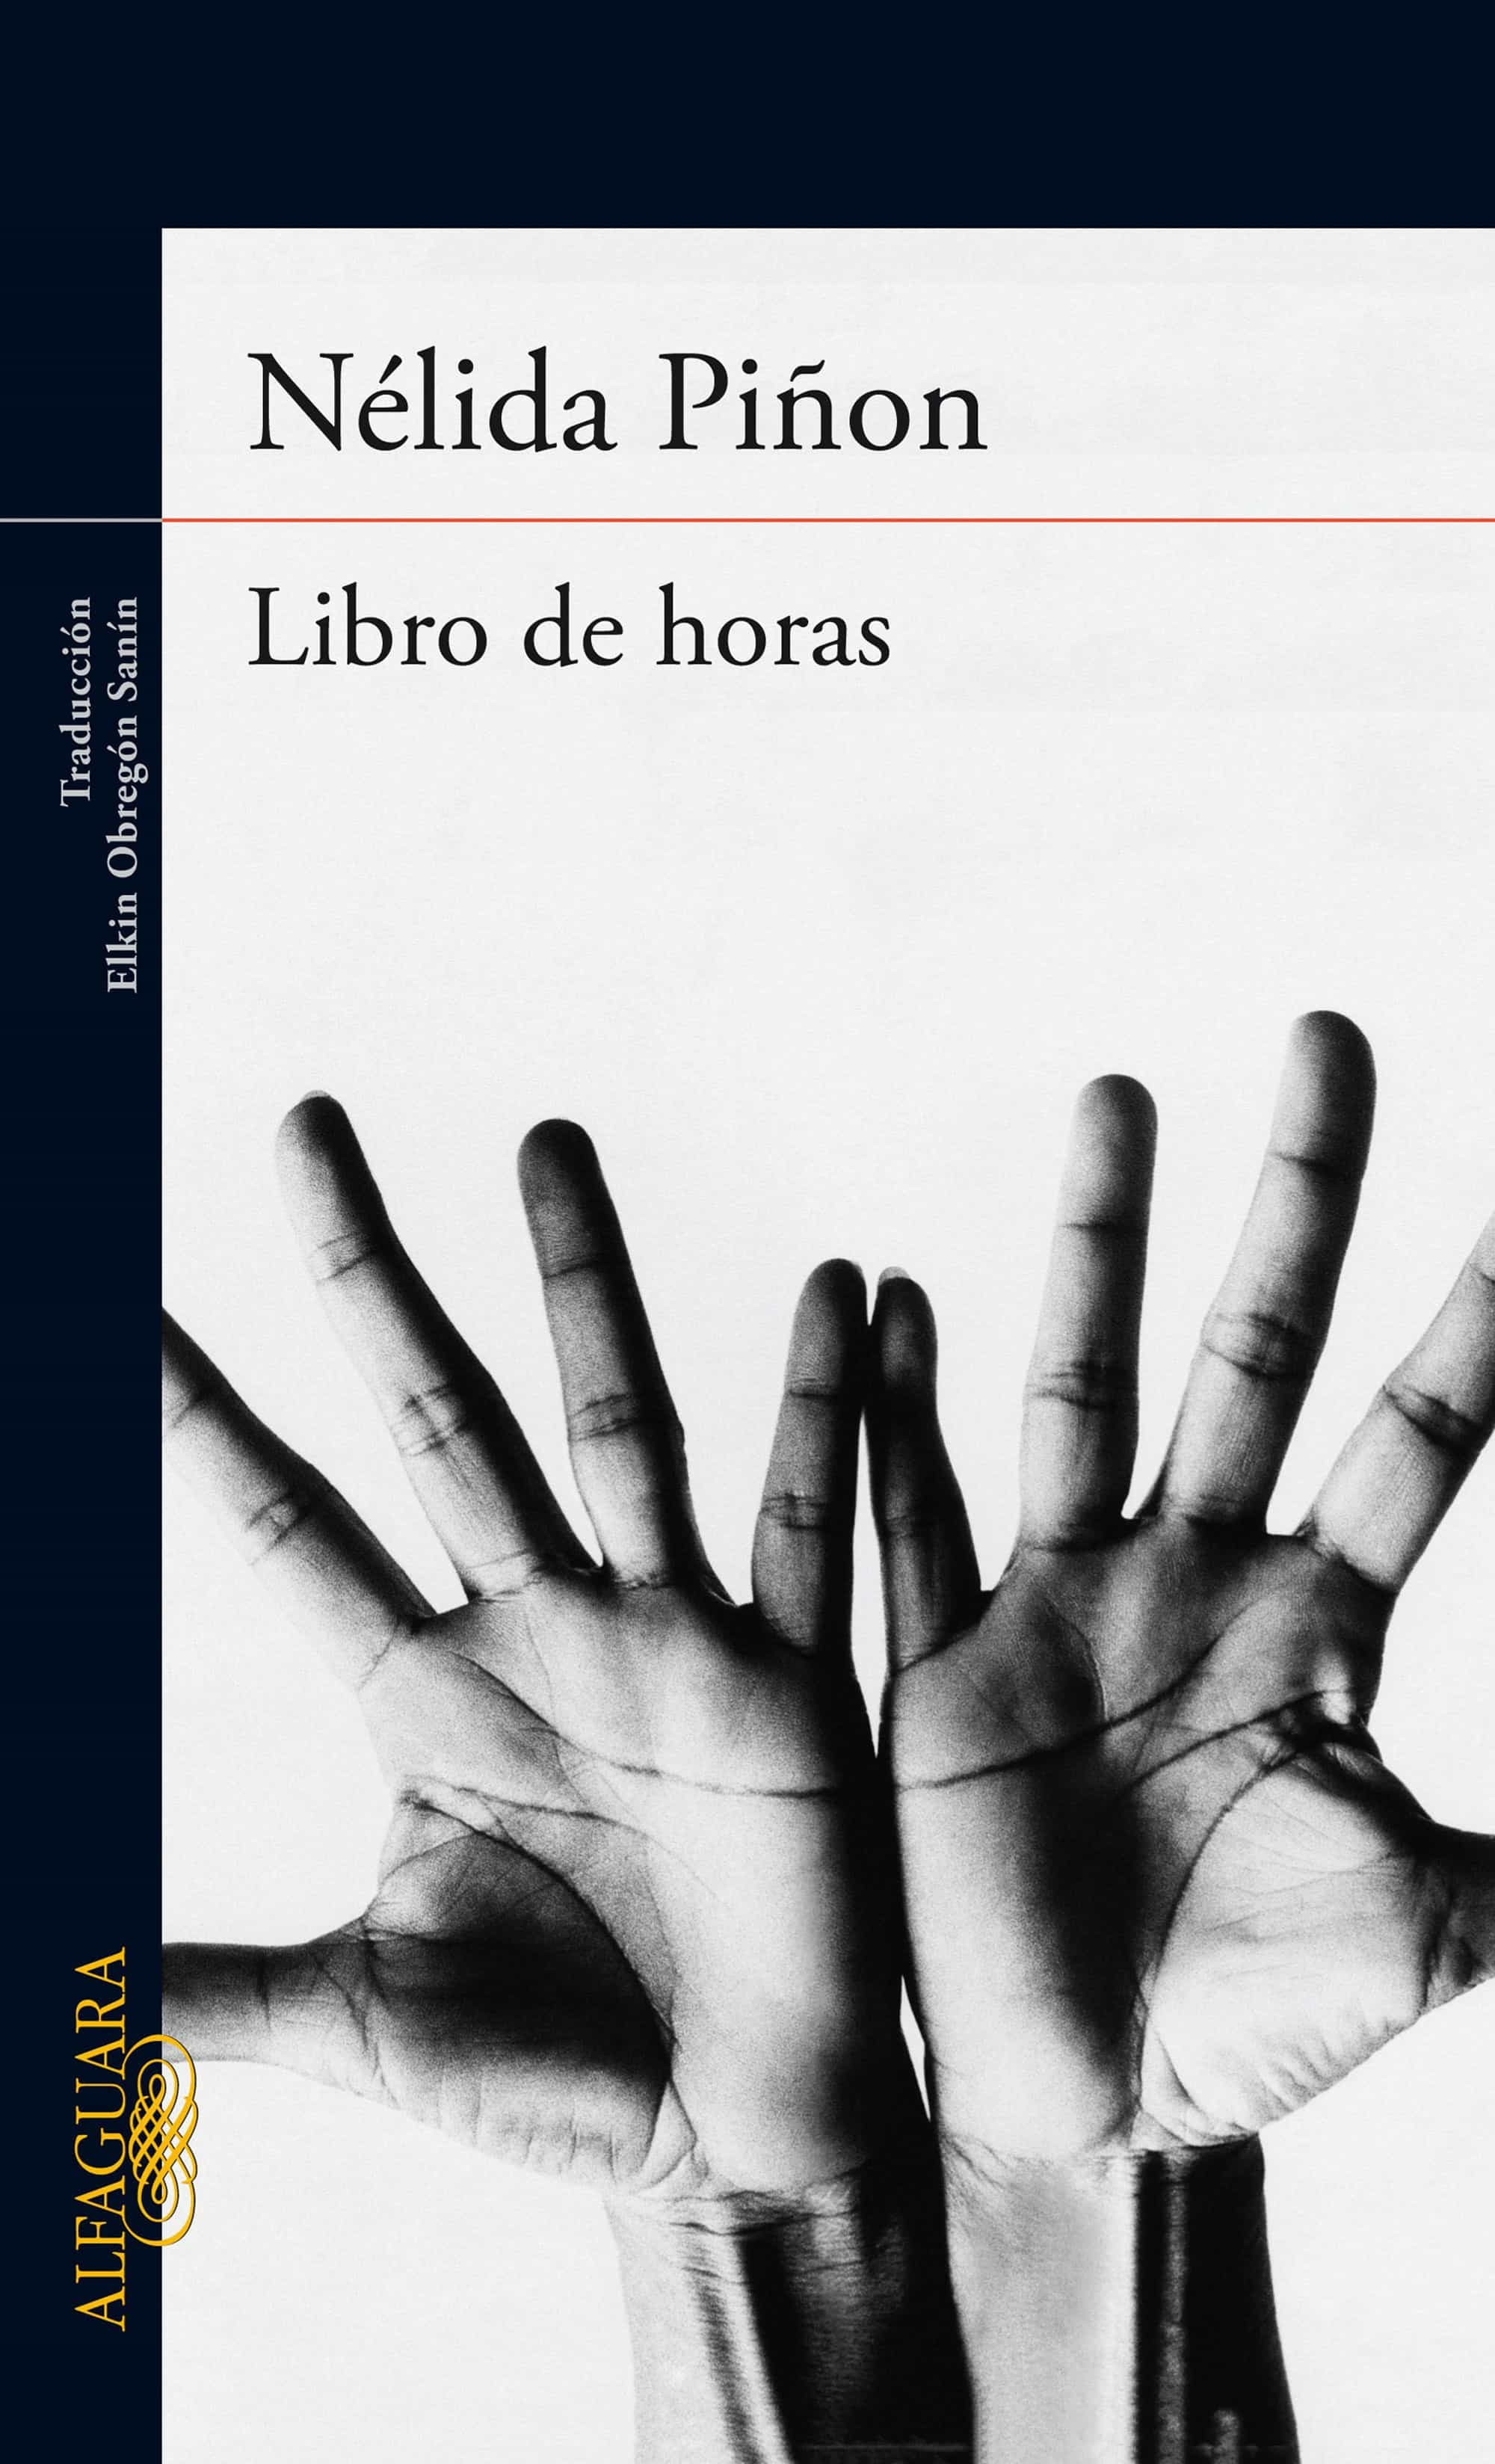 Como Descargar Libros Epub Libro De Horas Ebook Richard Russo Descargar Libro Pdf O Epub 9788420415734